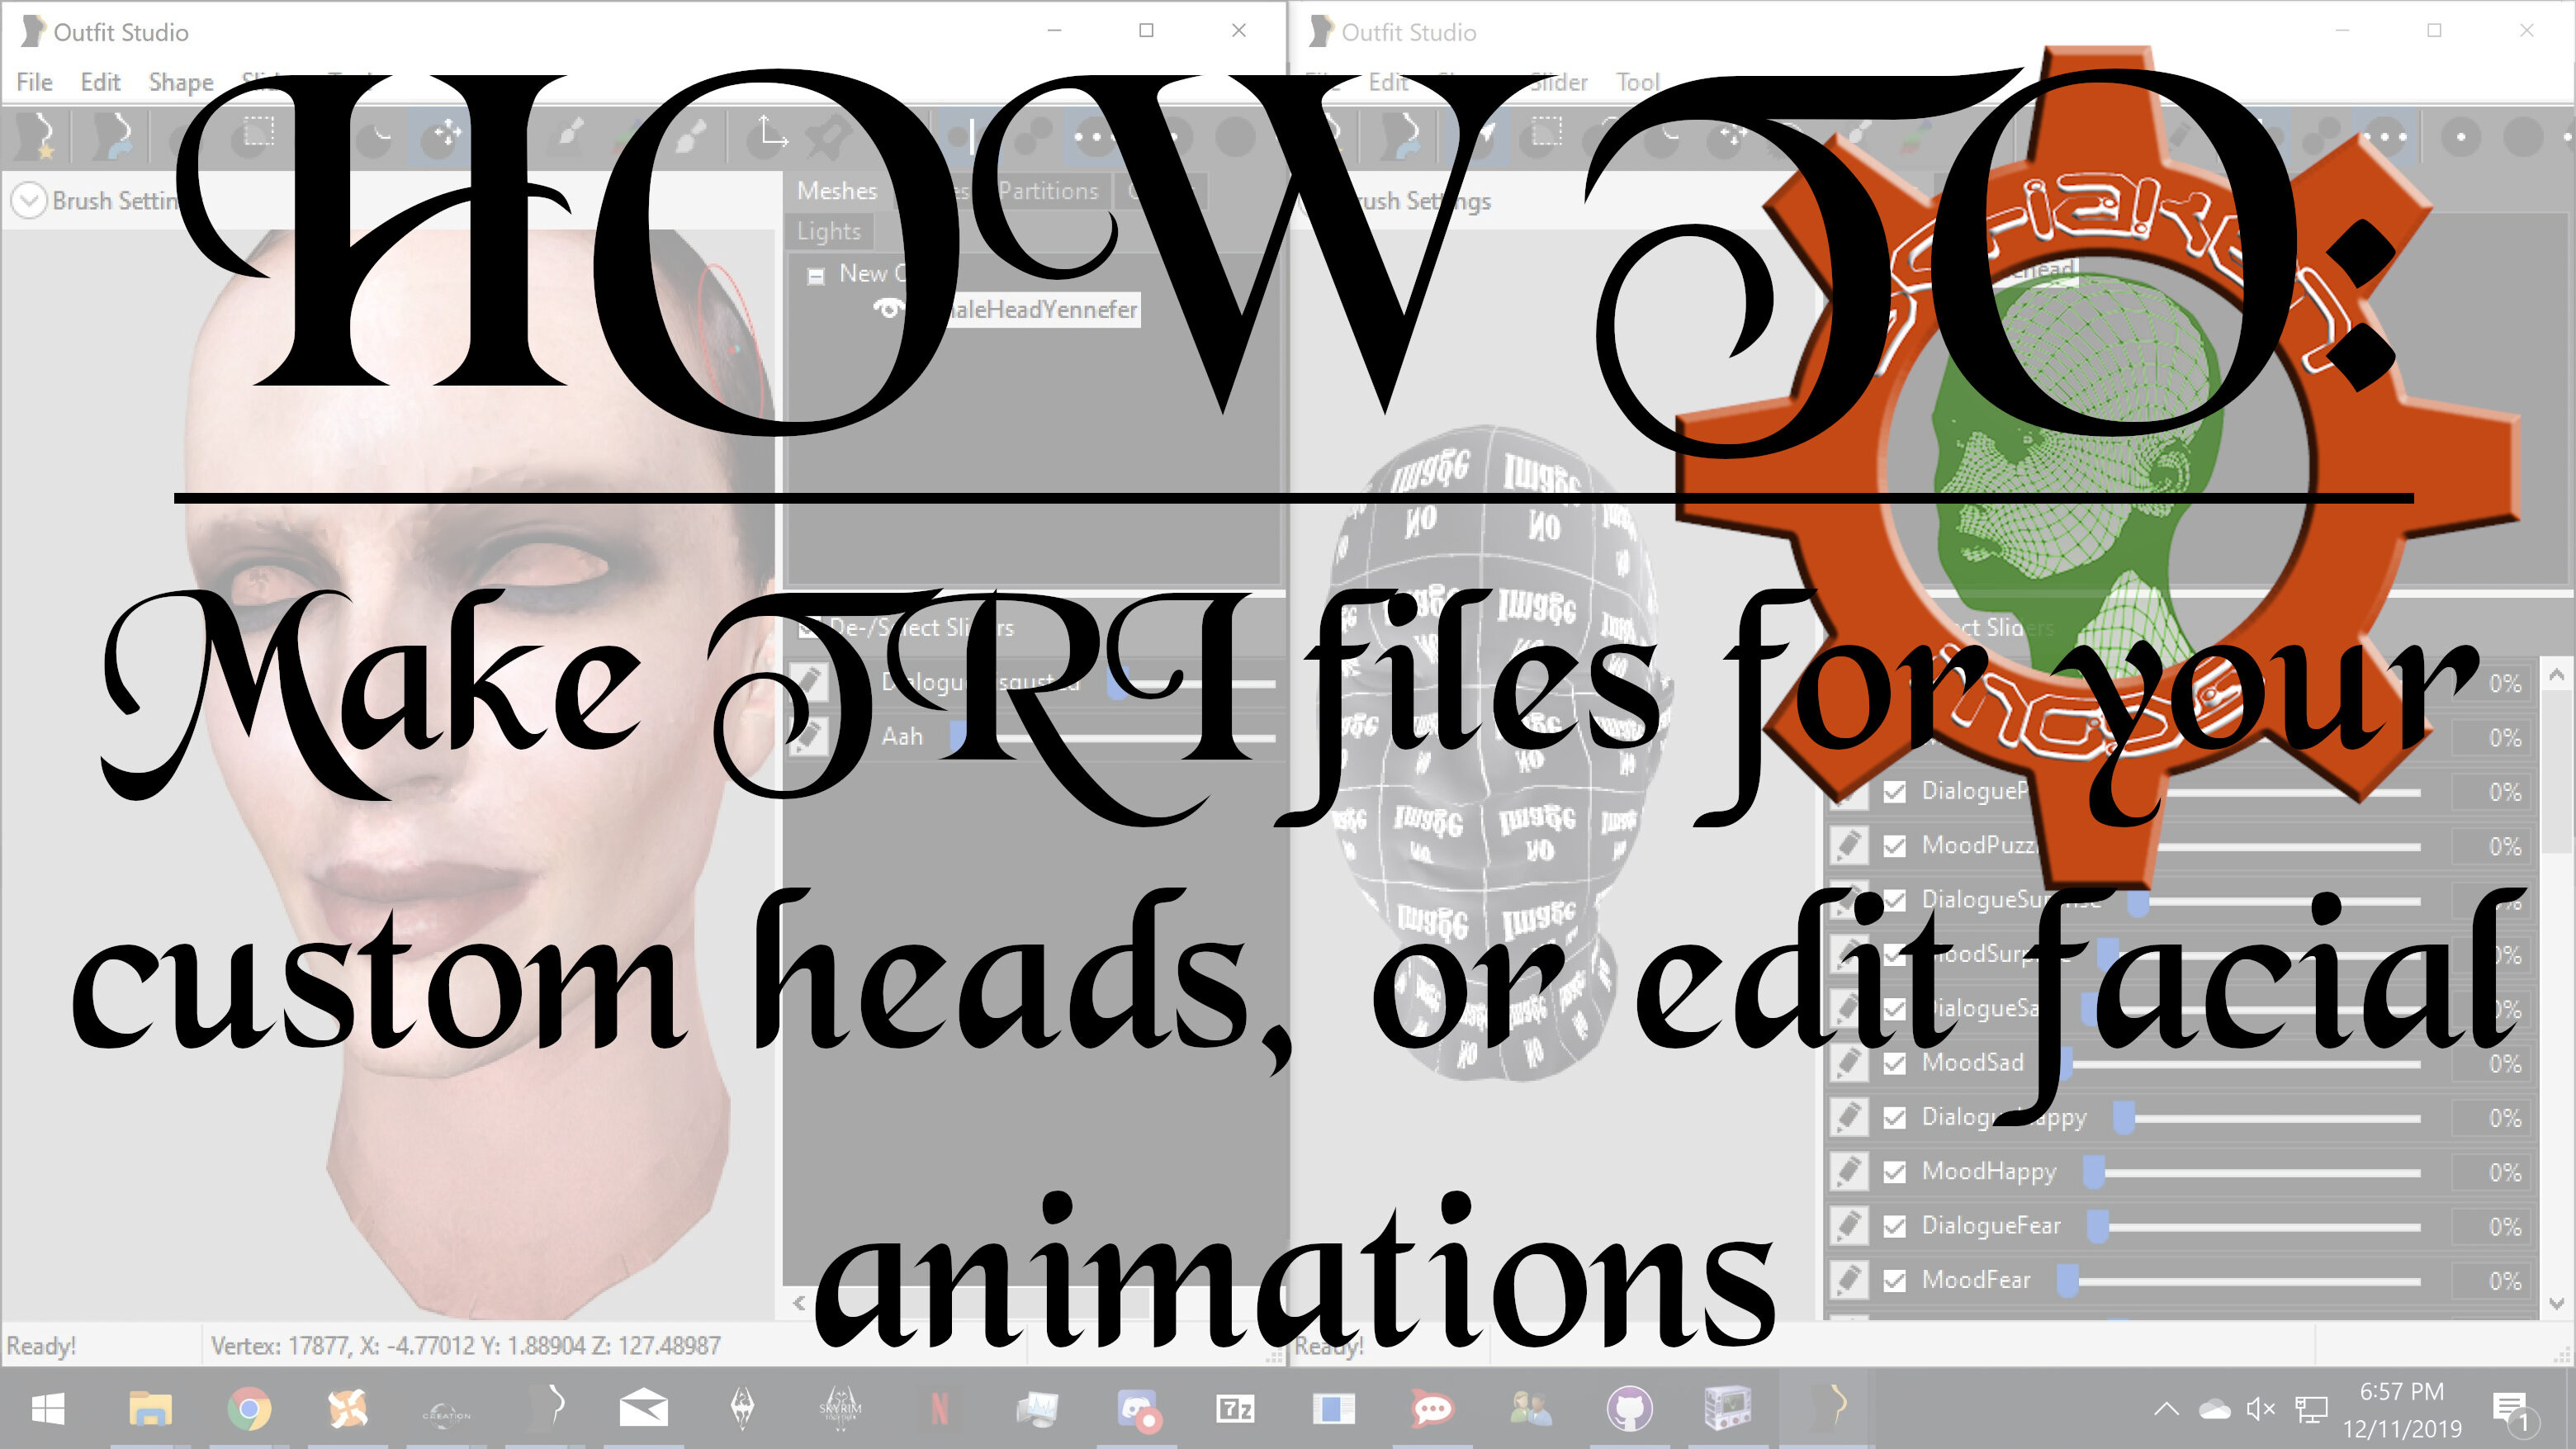 HOW TO: Make TRI files for your custom heads.